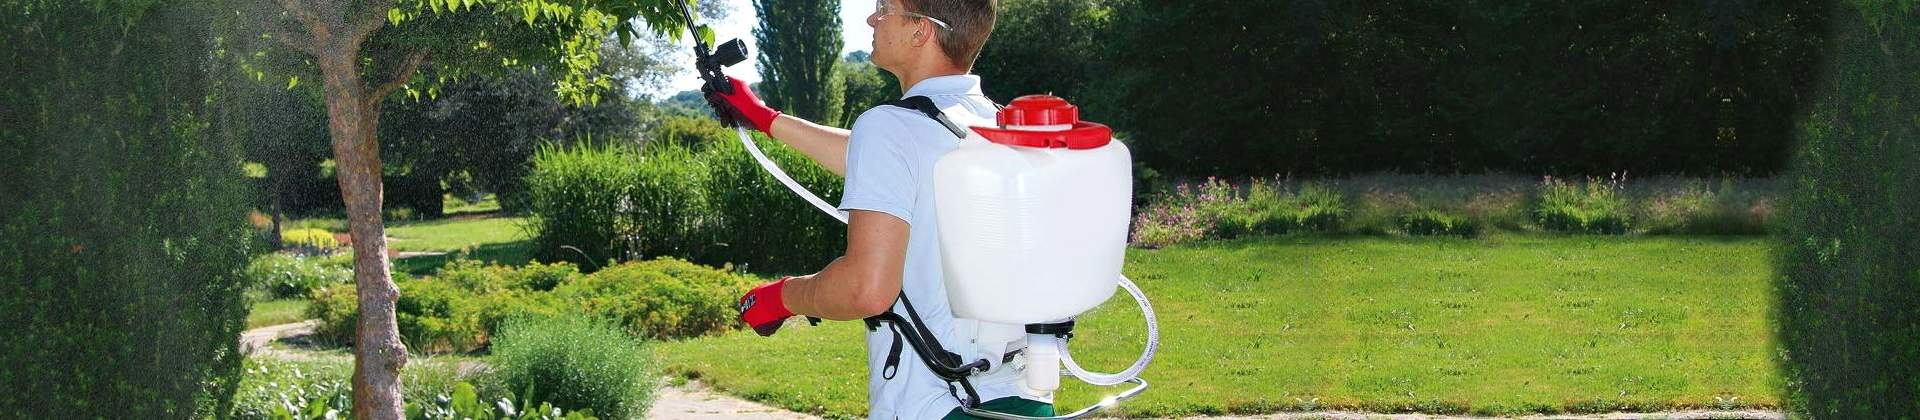 7 Best Backpack Sprayers to Make Caring for Your Garden Easier